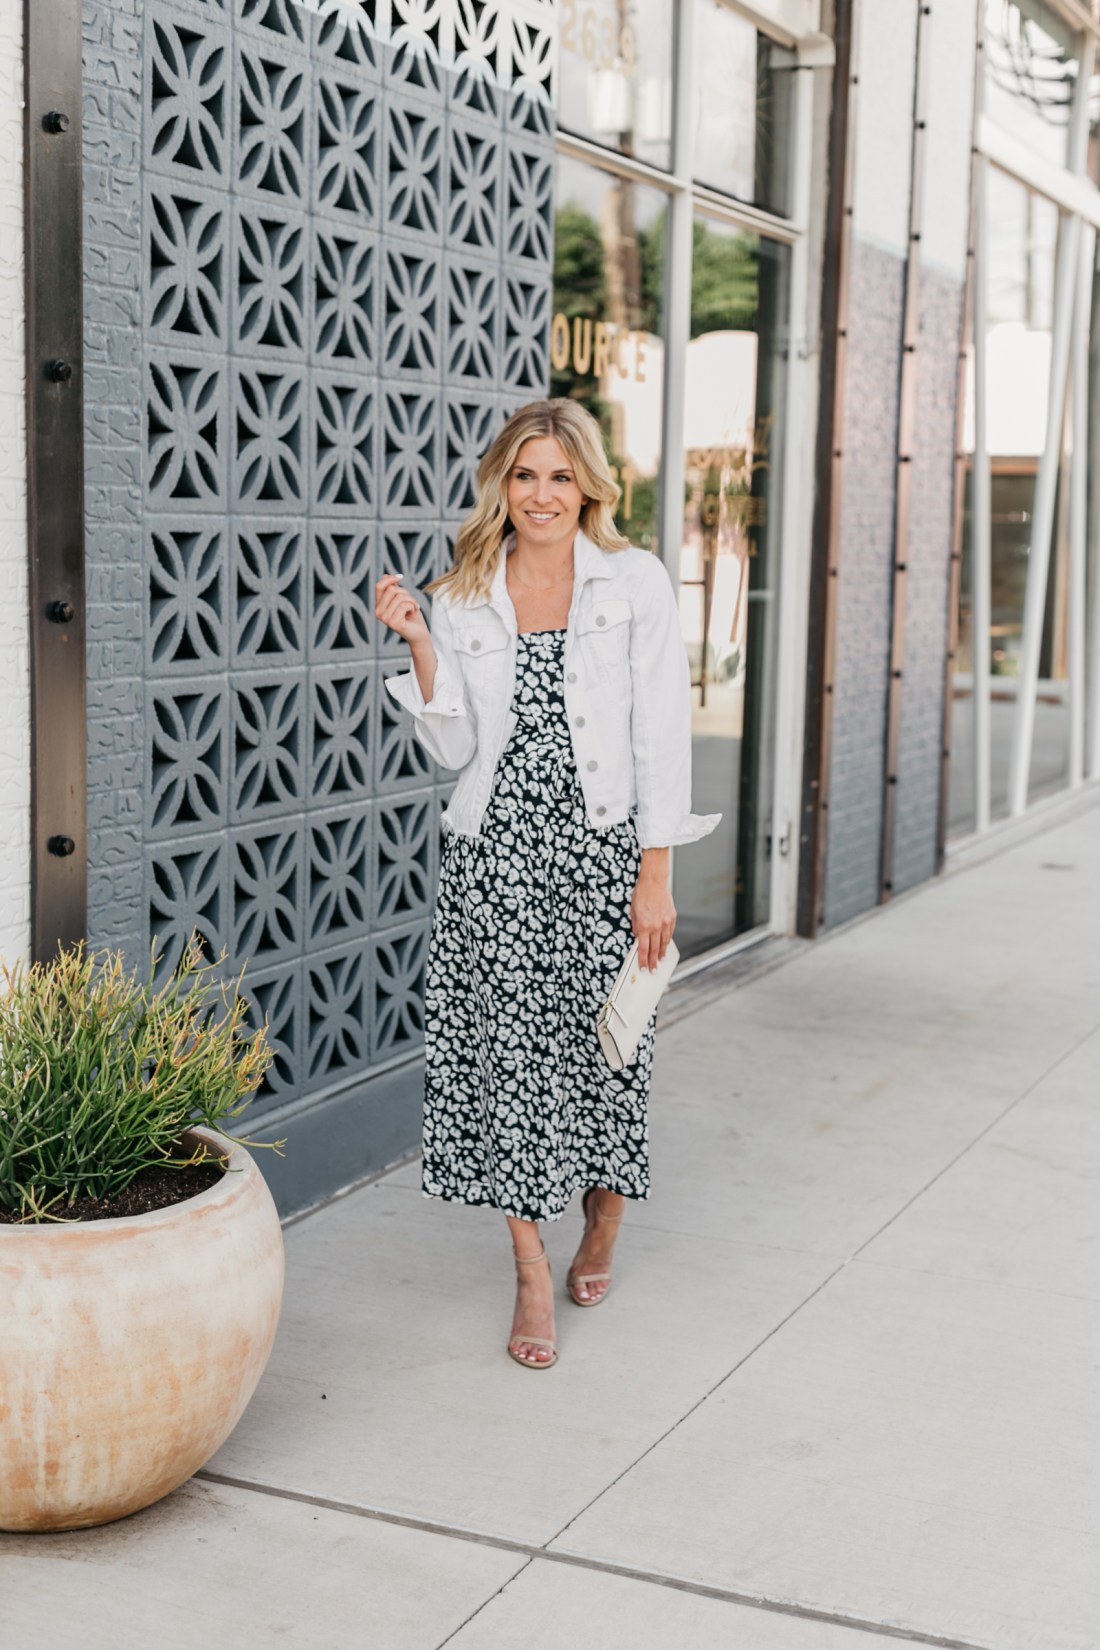 One Small Blonde is wearing a navy leopard jumpsuit from Banana Republic